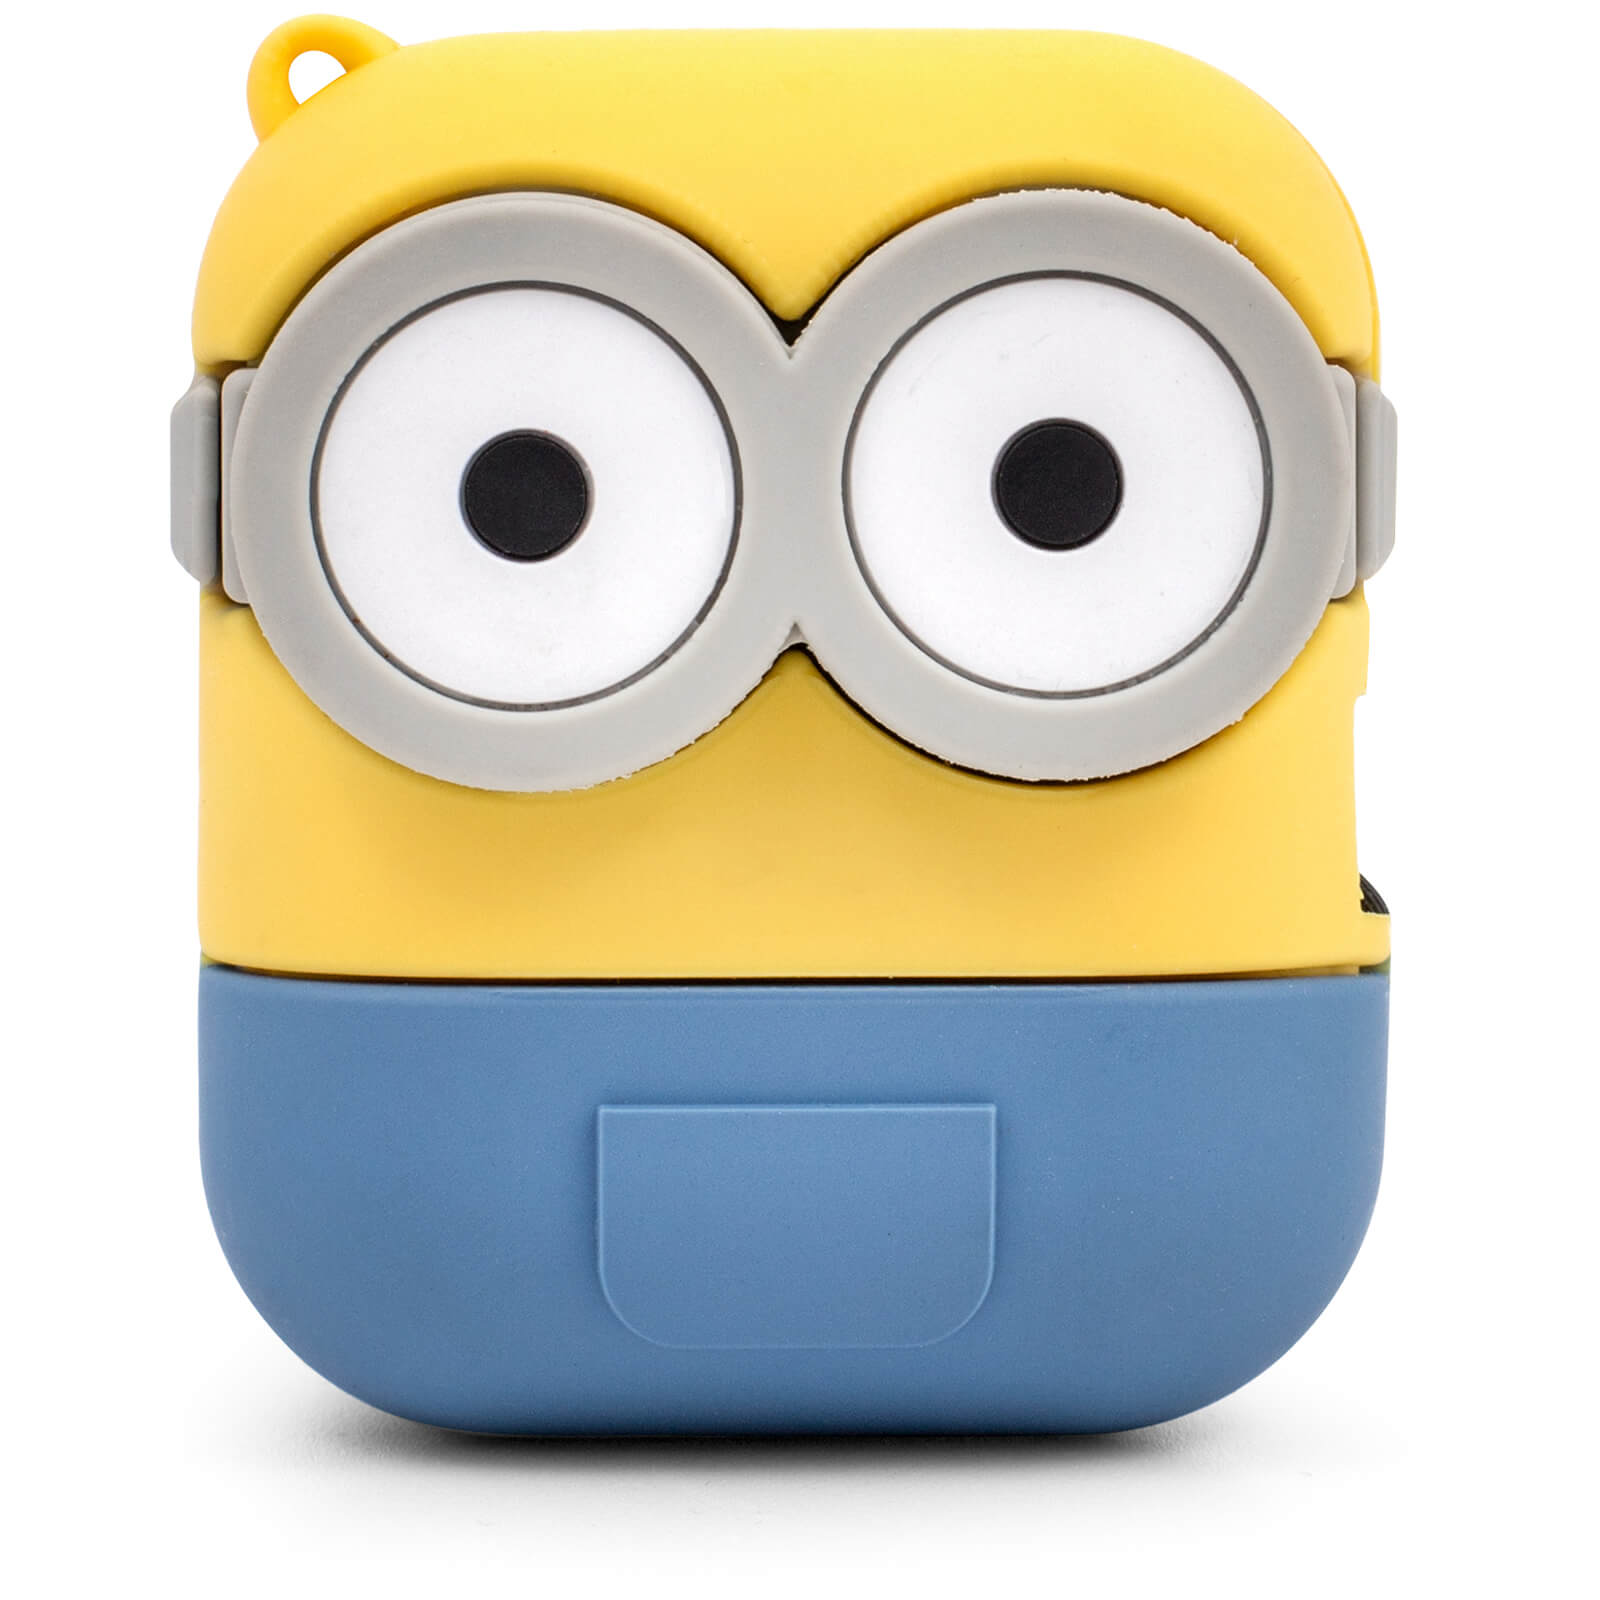 Image of Minions PowerSquad 3-in-1 Retractable Cable